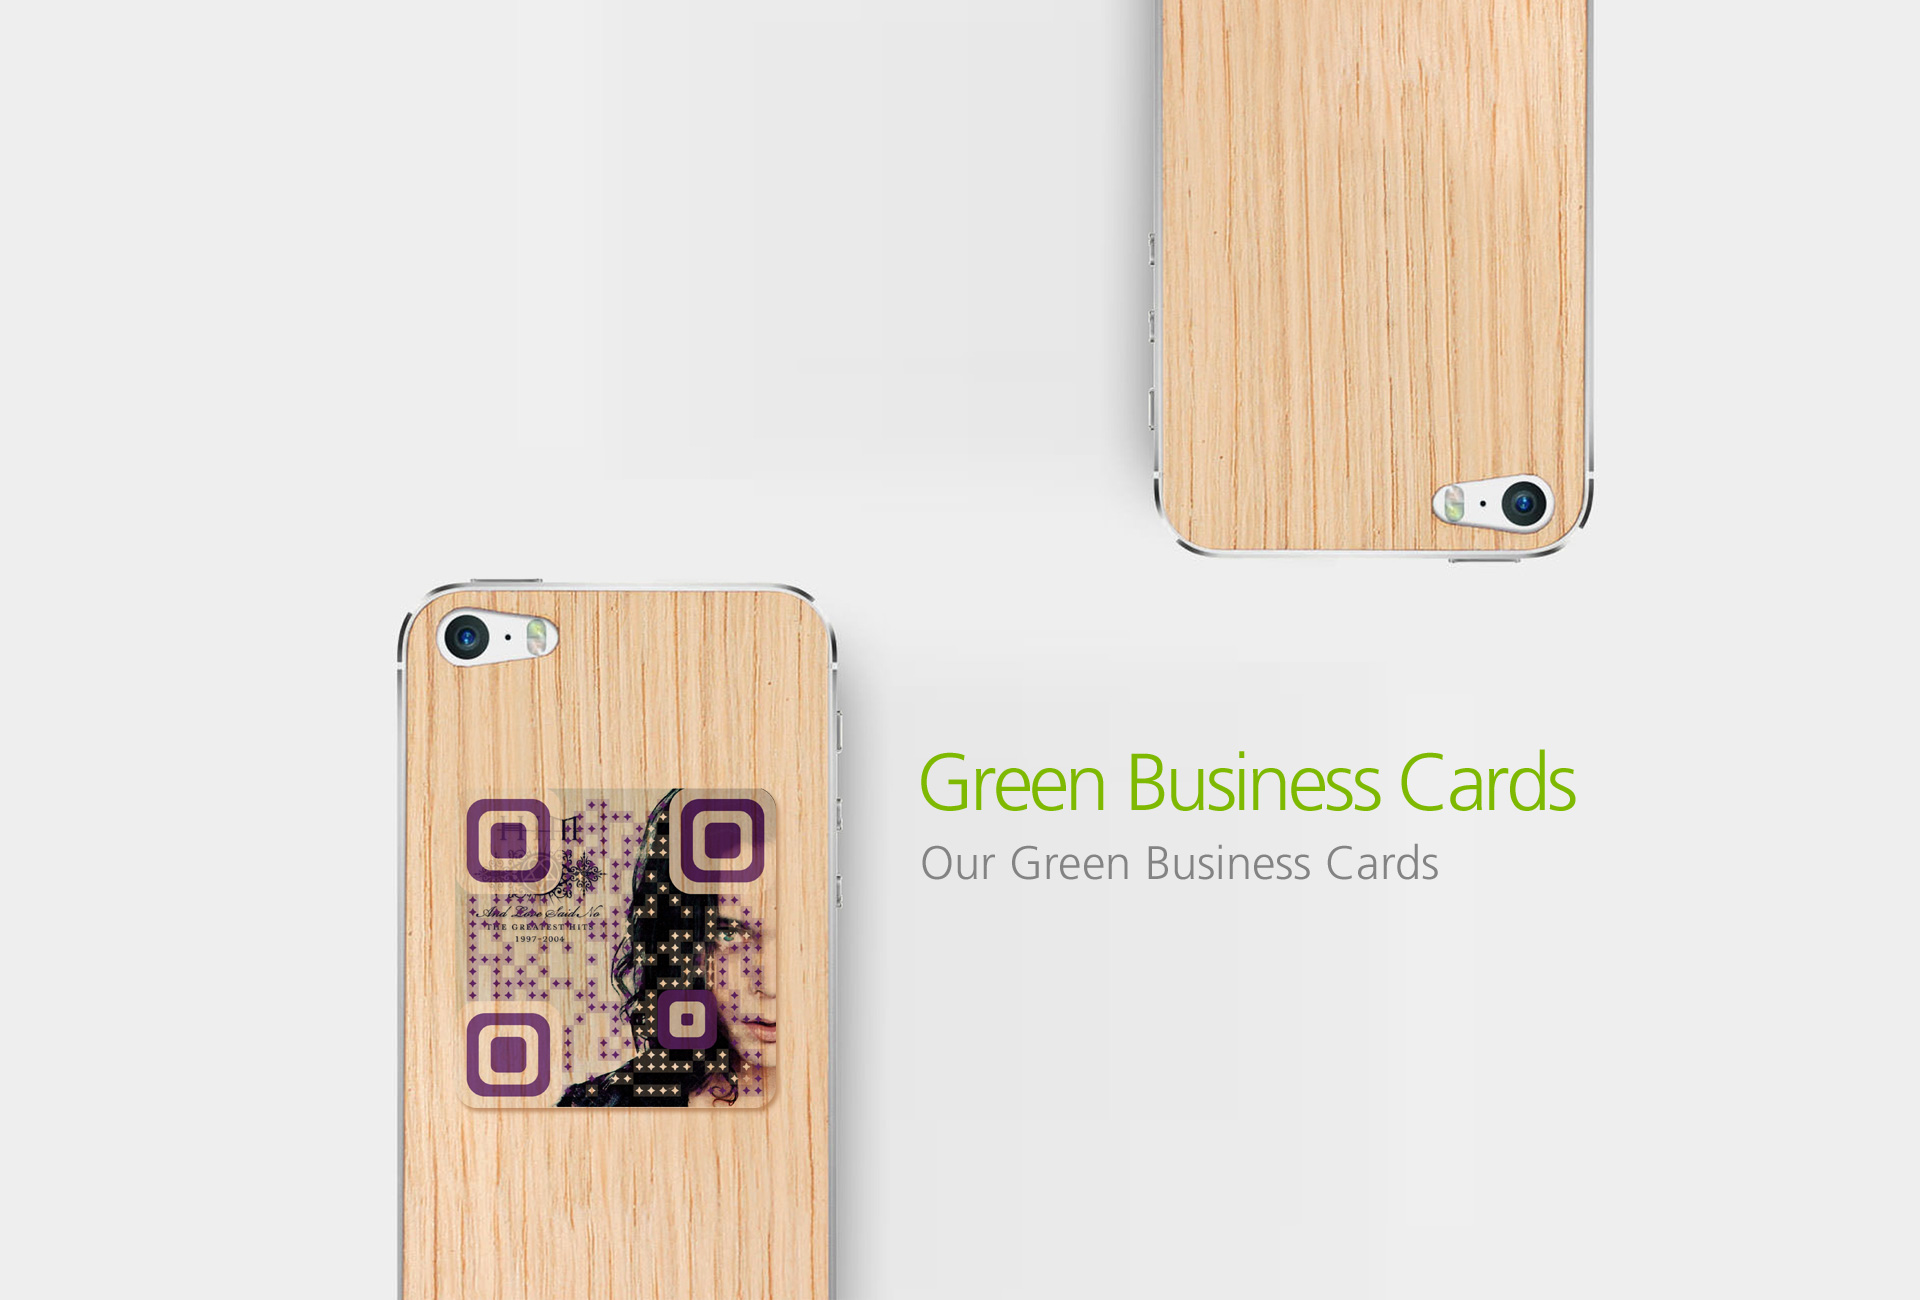 Online business card maker qr code maker qr code generator environmentally friendly colourmoves